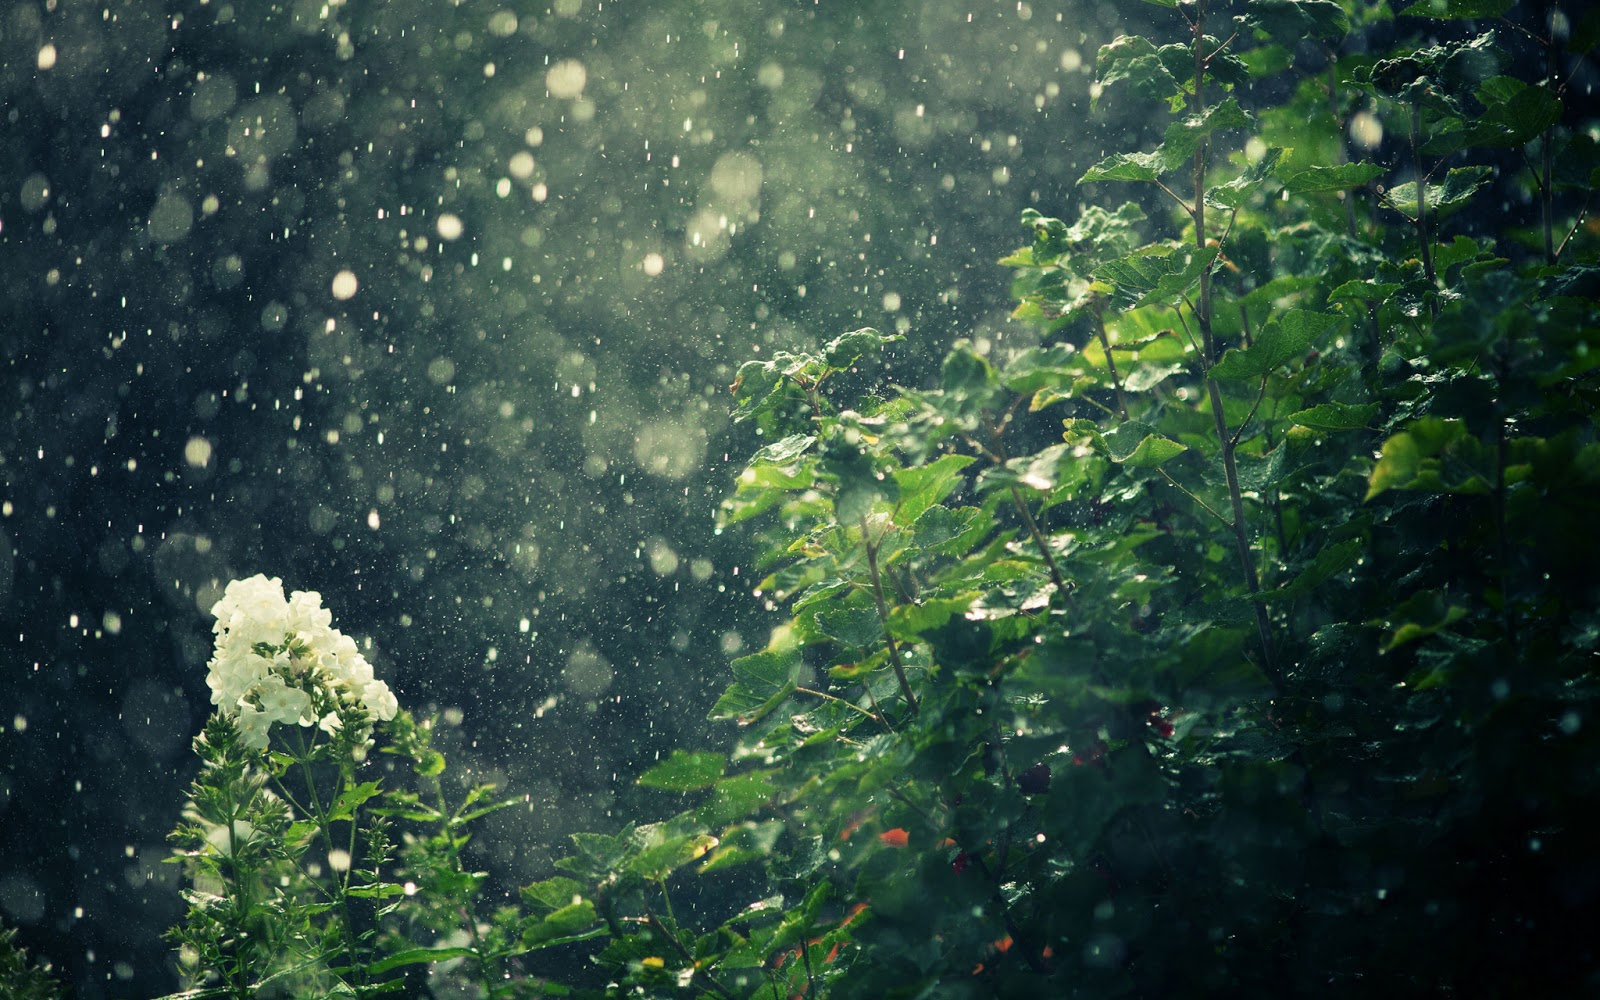 Rain Falling HD Wallpapers Pictures Images Backgrounds 1600x1000